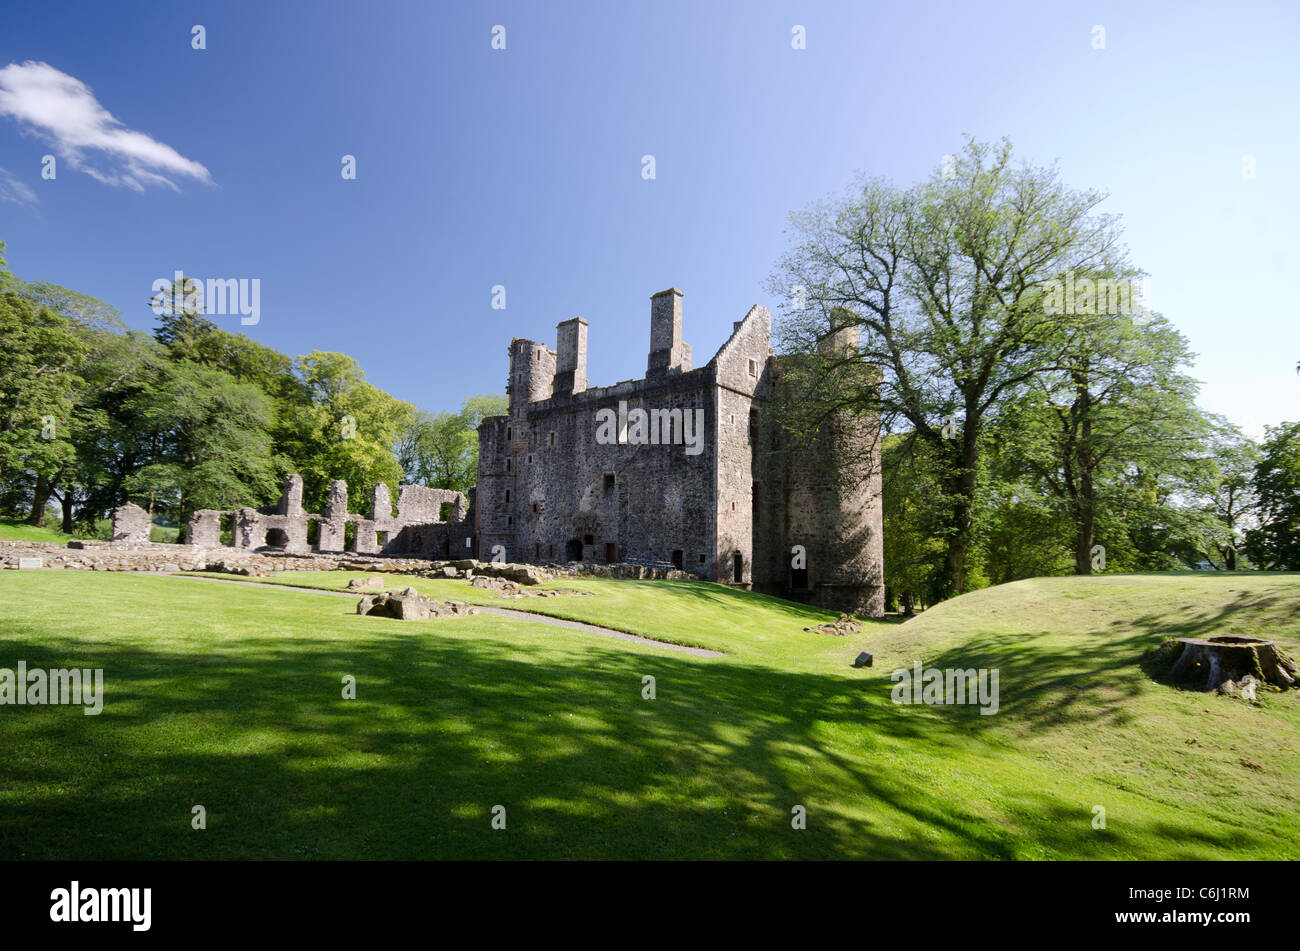 Huntly Castle from the rear - Stock Image